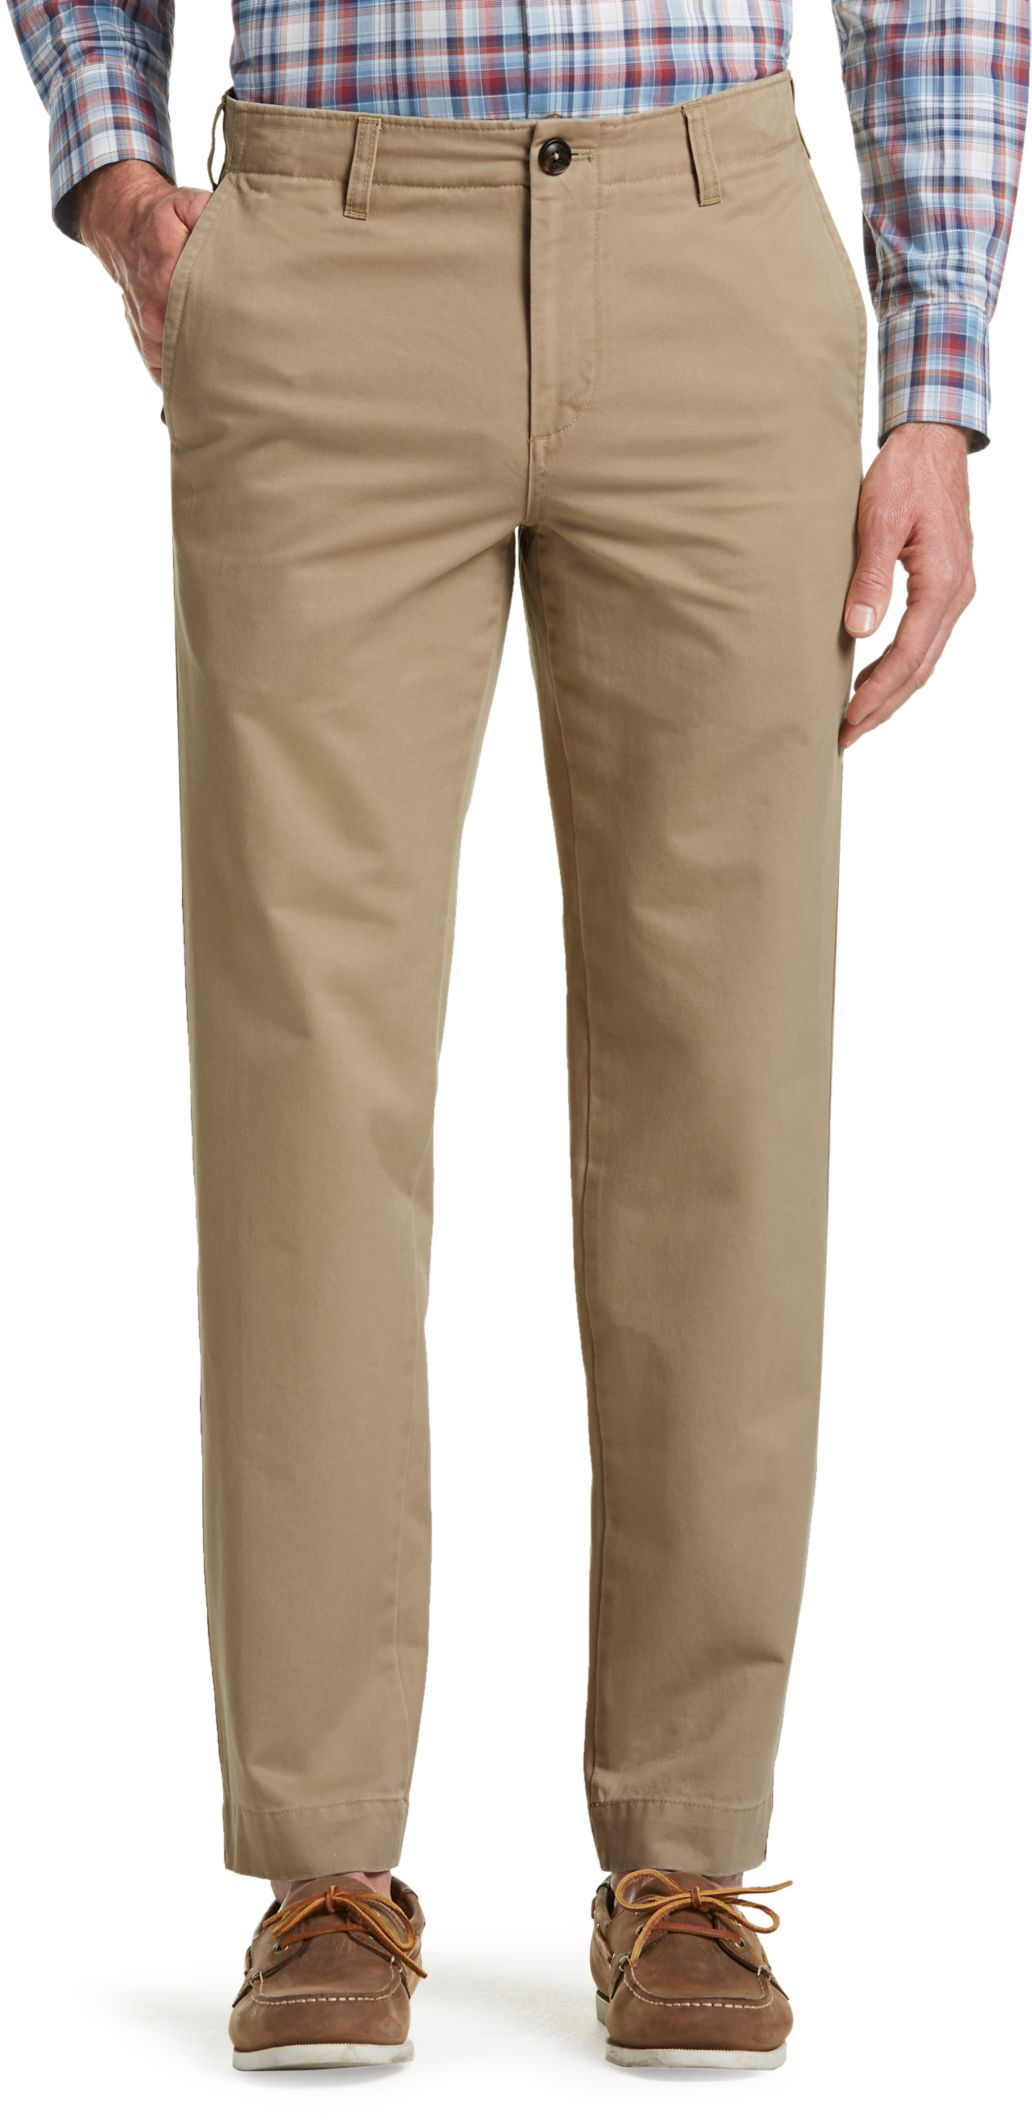 Joseph Abboud Tailored Fit Chino Pants